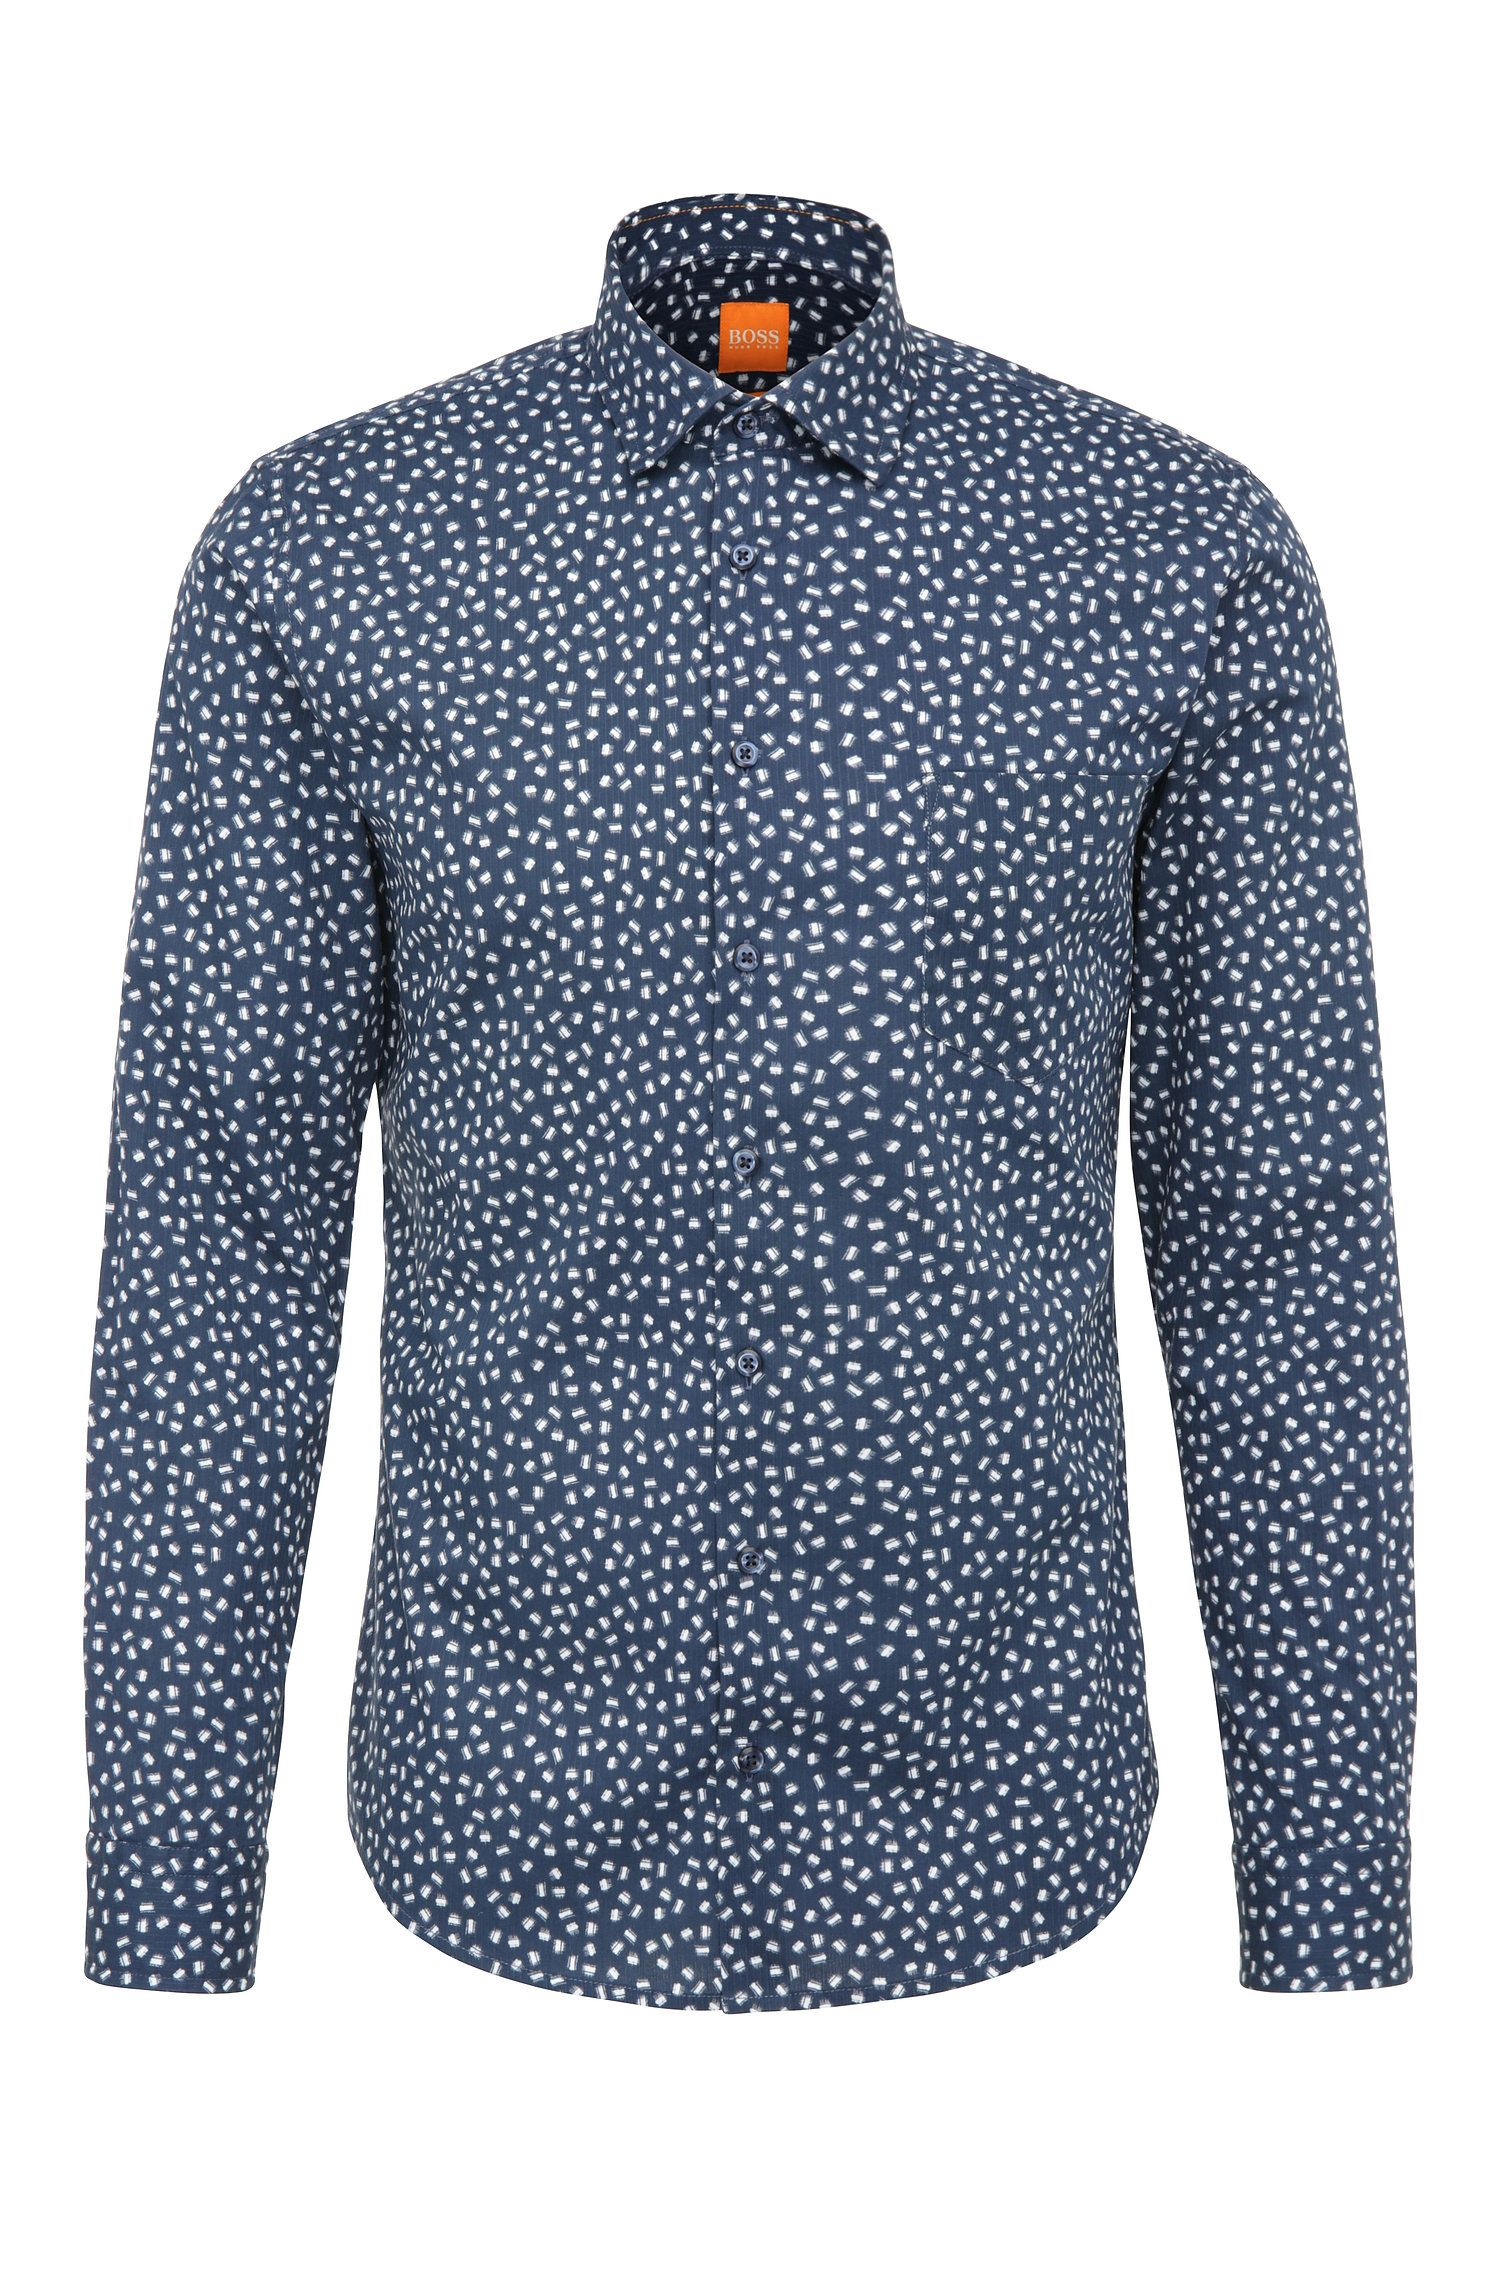 Slim-fit shirt in cotton with print: 'Epop'